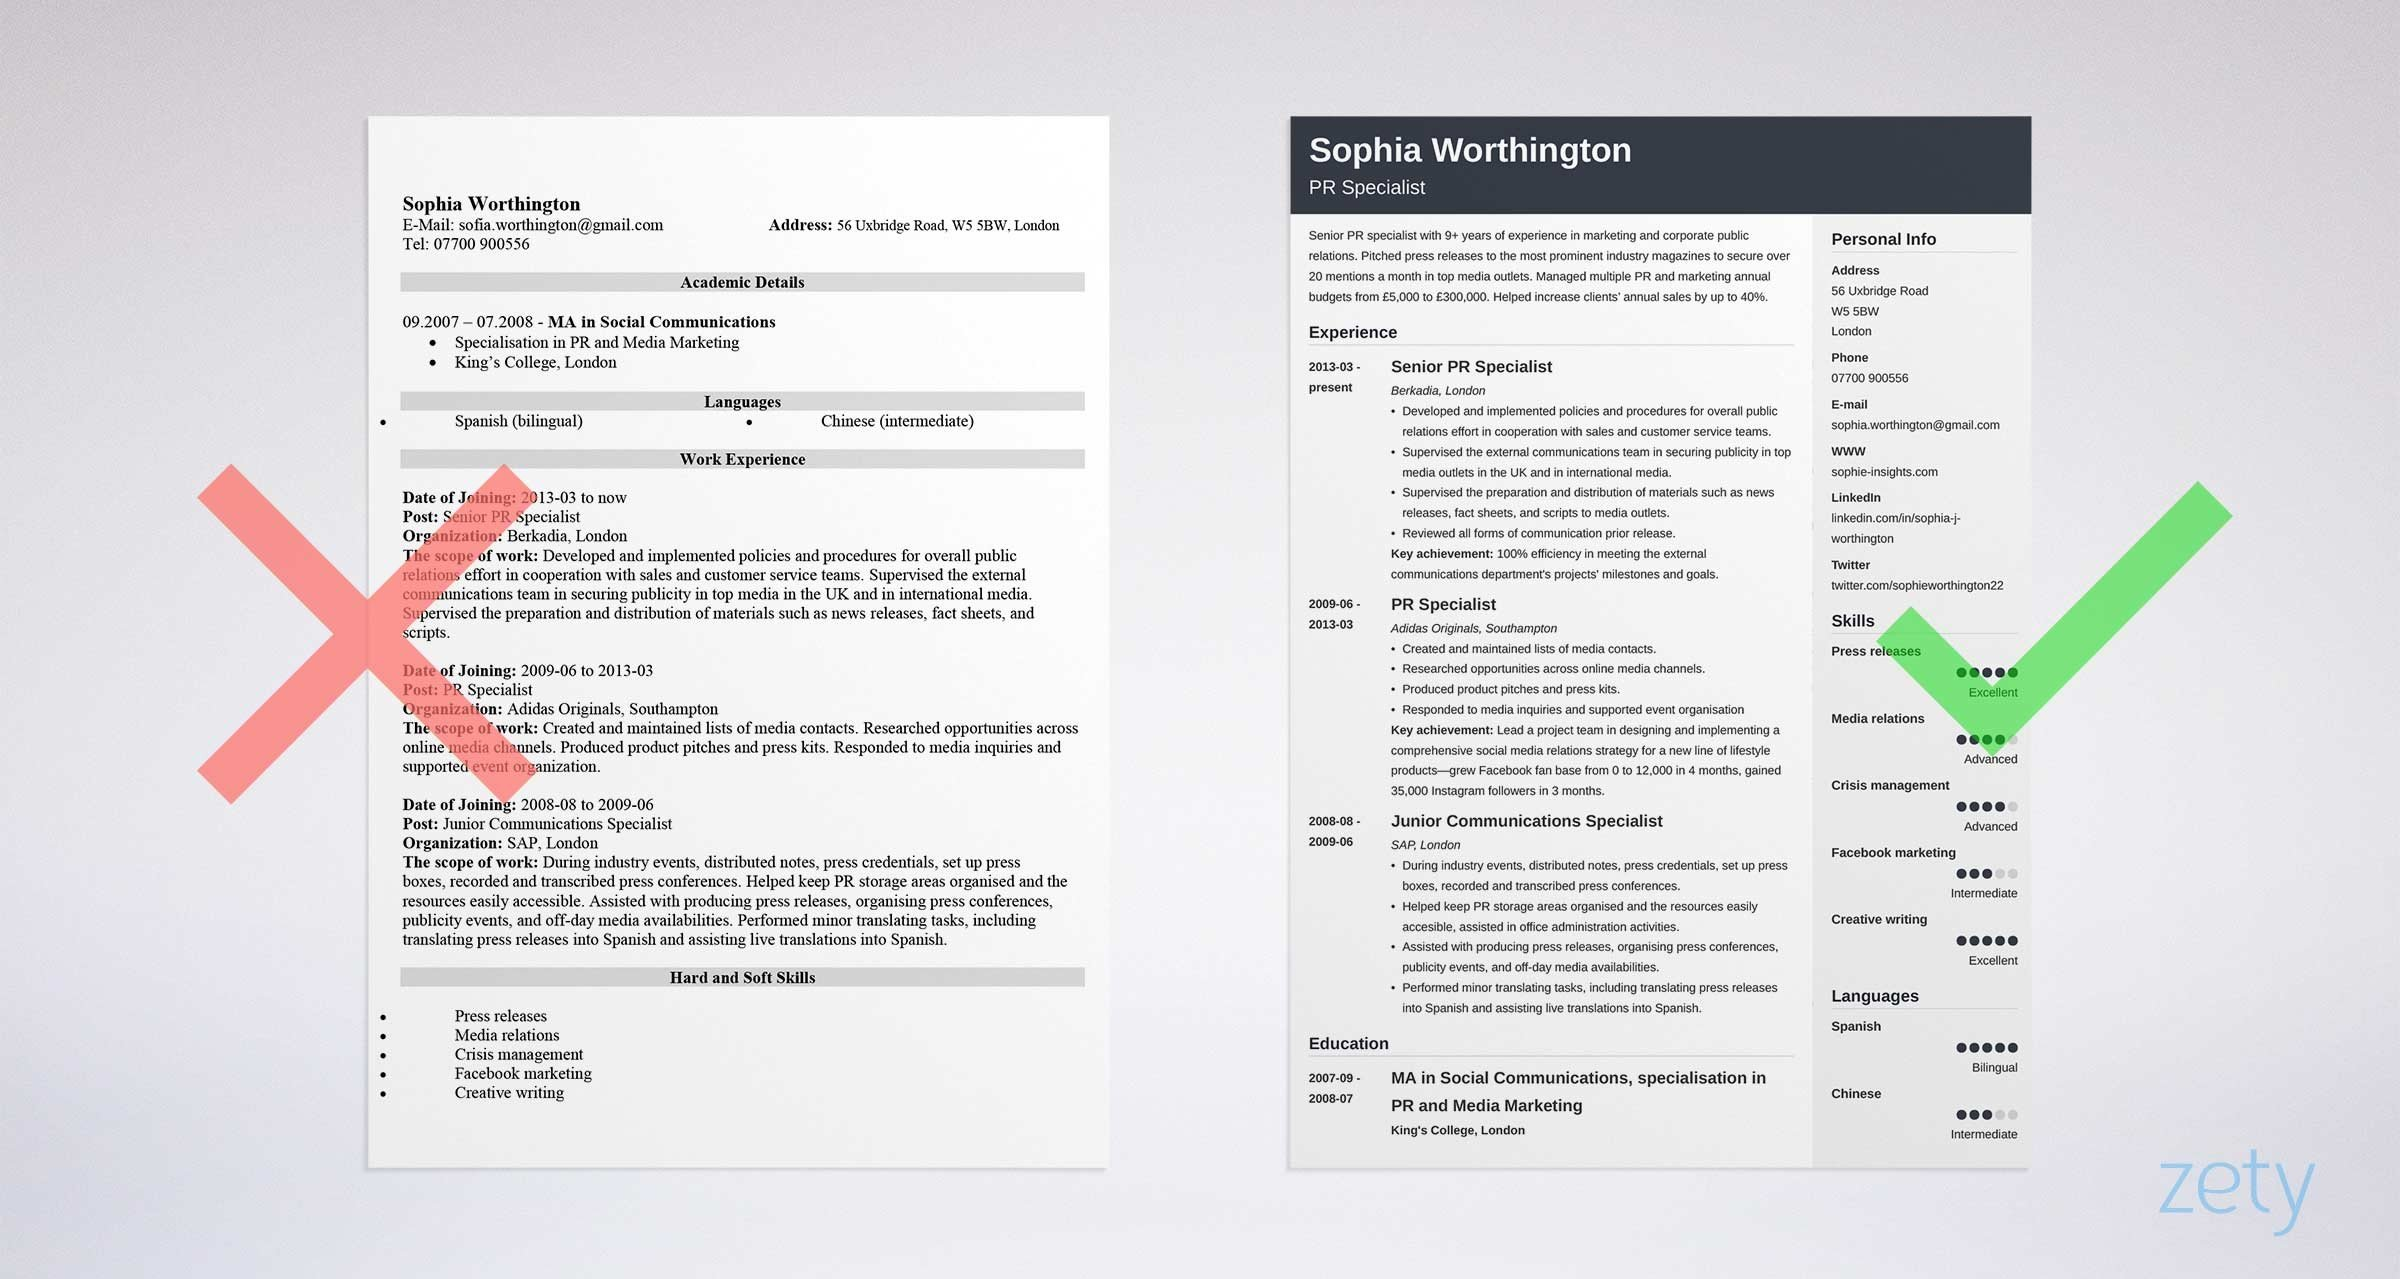 How To Write A CV For A Job In 7 Easy Steps (15+ Examples